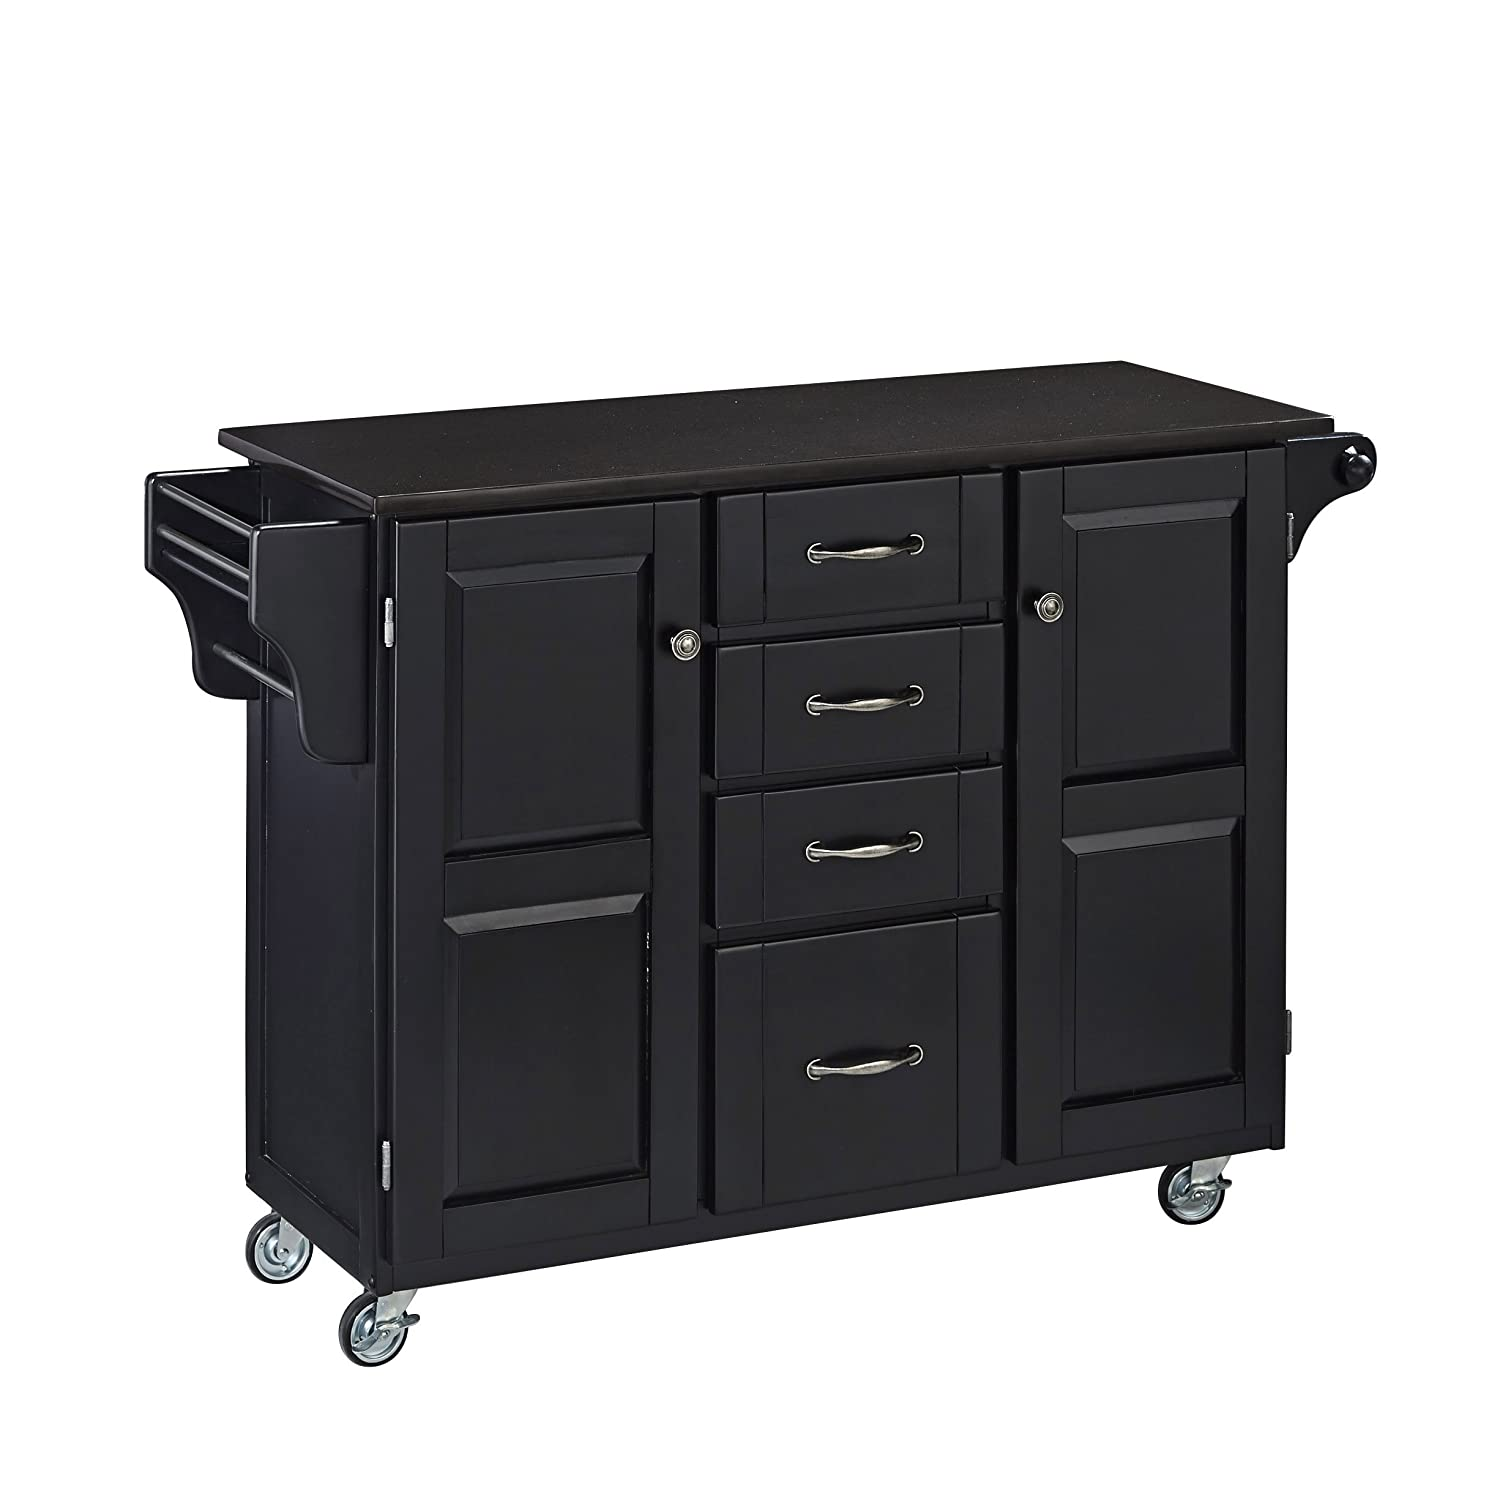 Create-a-Cart Black 2 Door Kitchen Cart with Black Granite Top by Home Styles